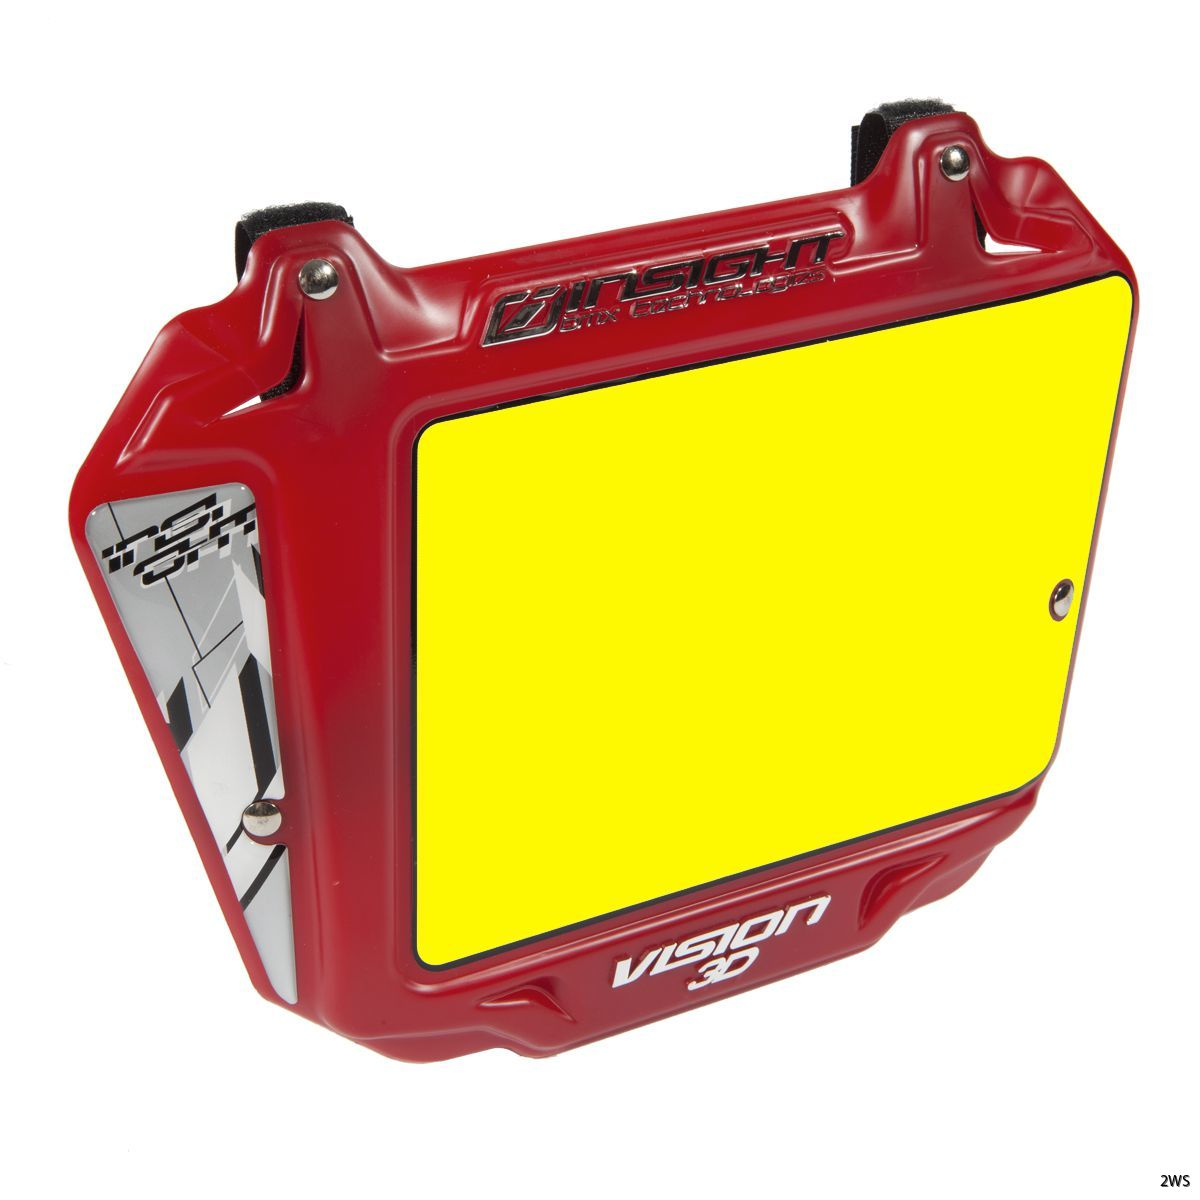 insight-number-plate-vision-3d-pro-yellow-bg